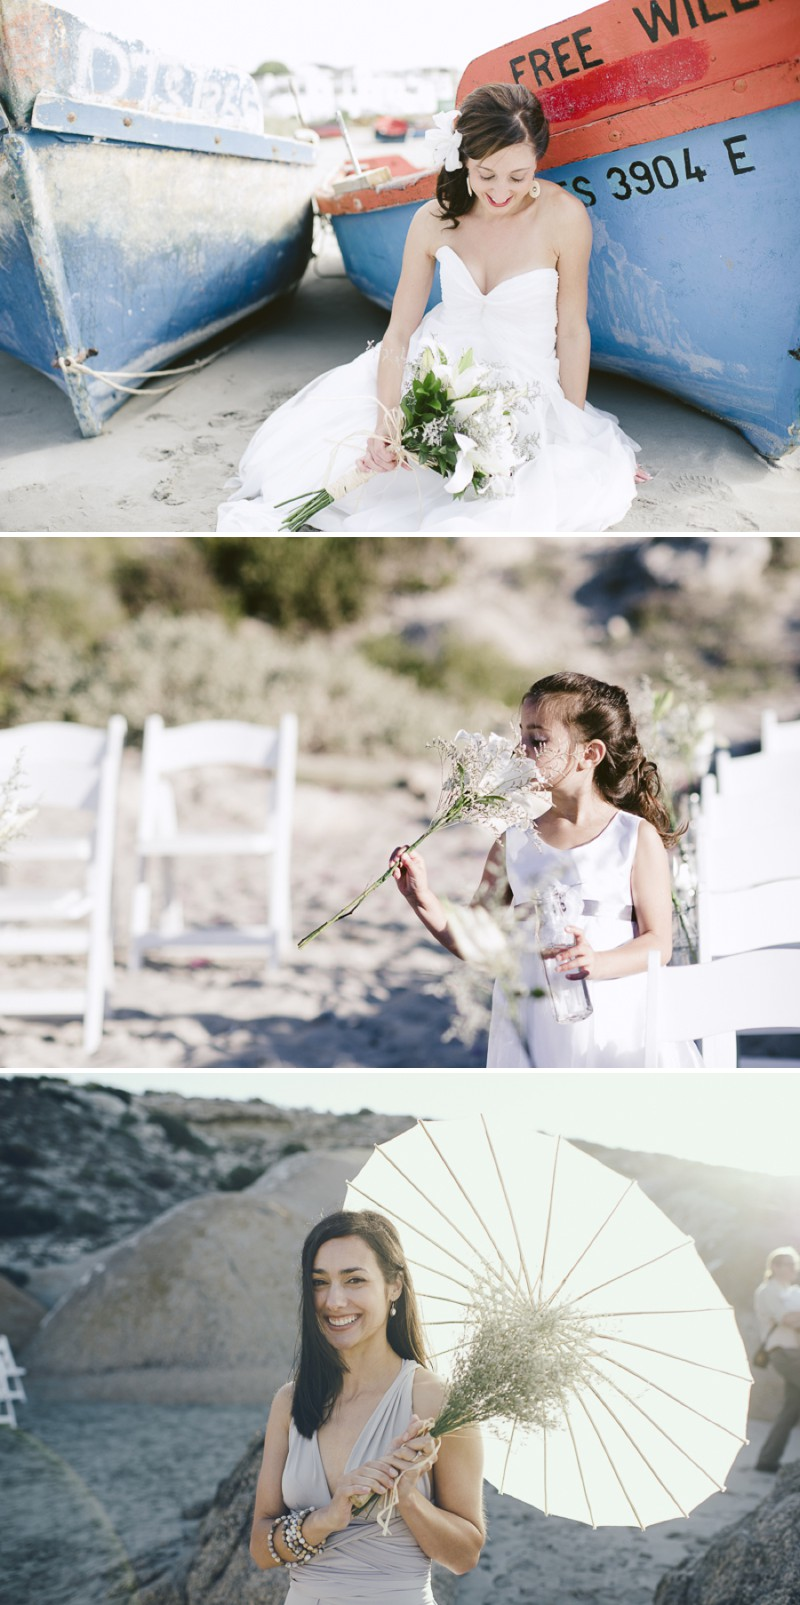 A South African Destination Beach Wedding At Pasternoster Lodge With A Grey Colour Scheme And A Raw Chiffon Bespoke Wedding Dress With A White Lily Bouquet Photographed By Jules Morgan._0008